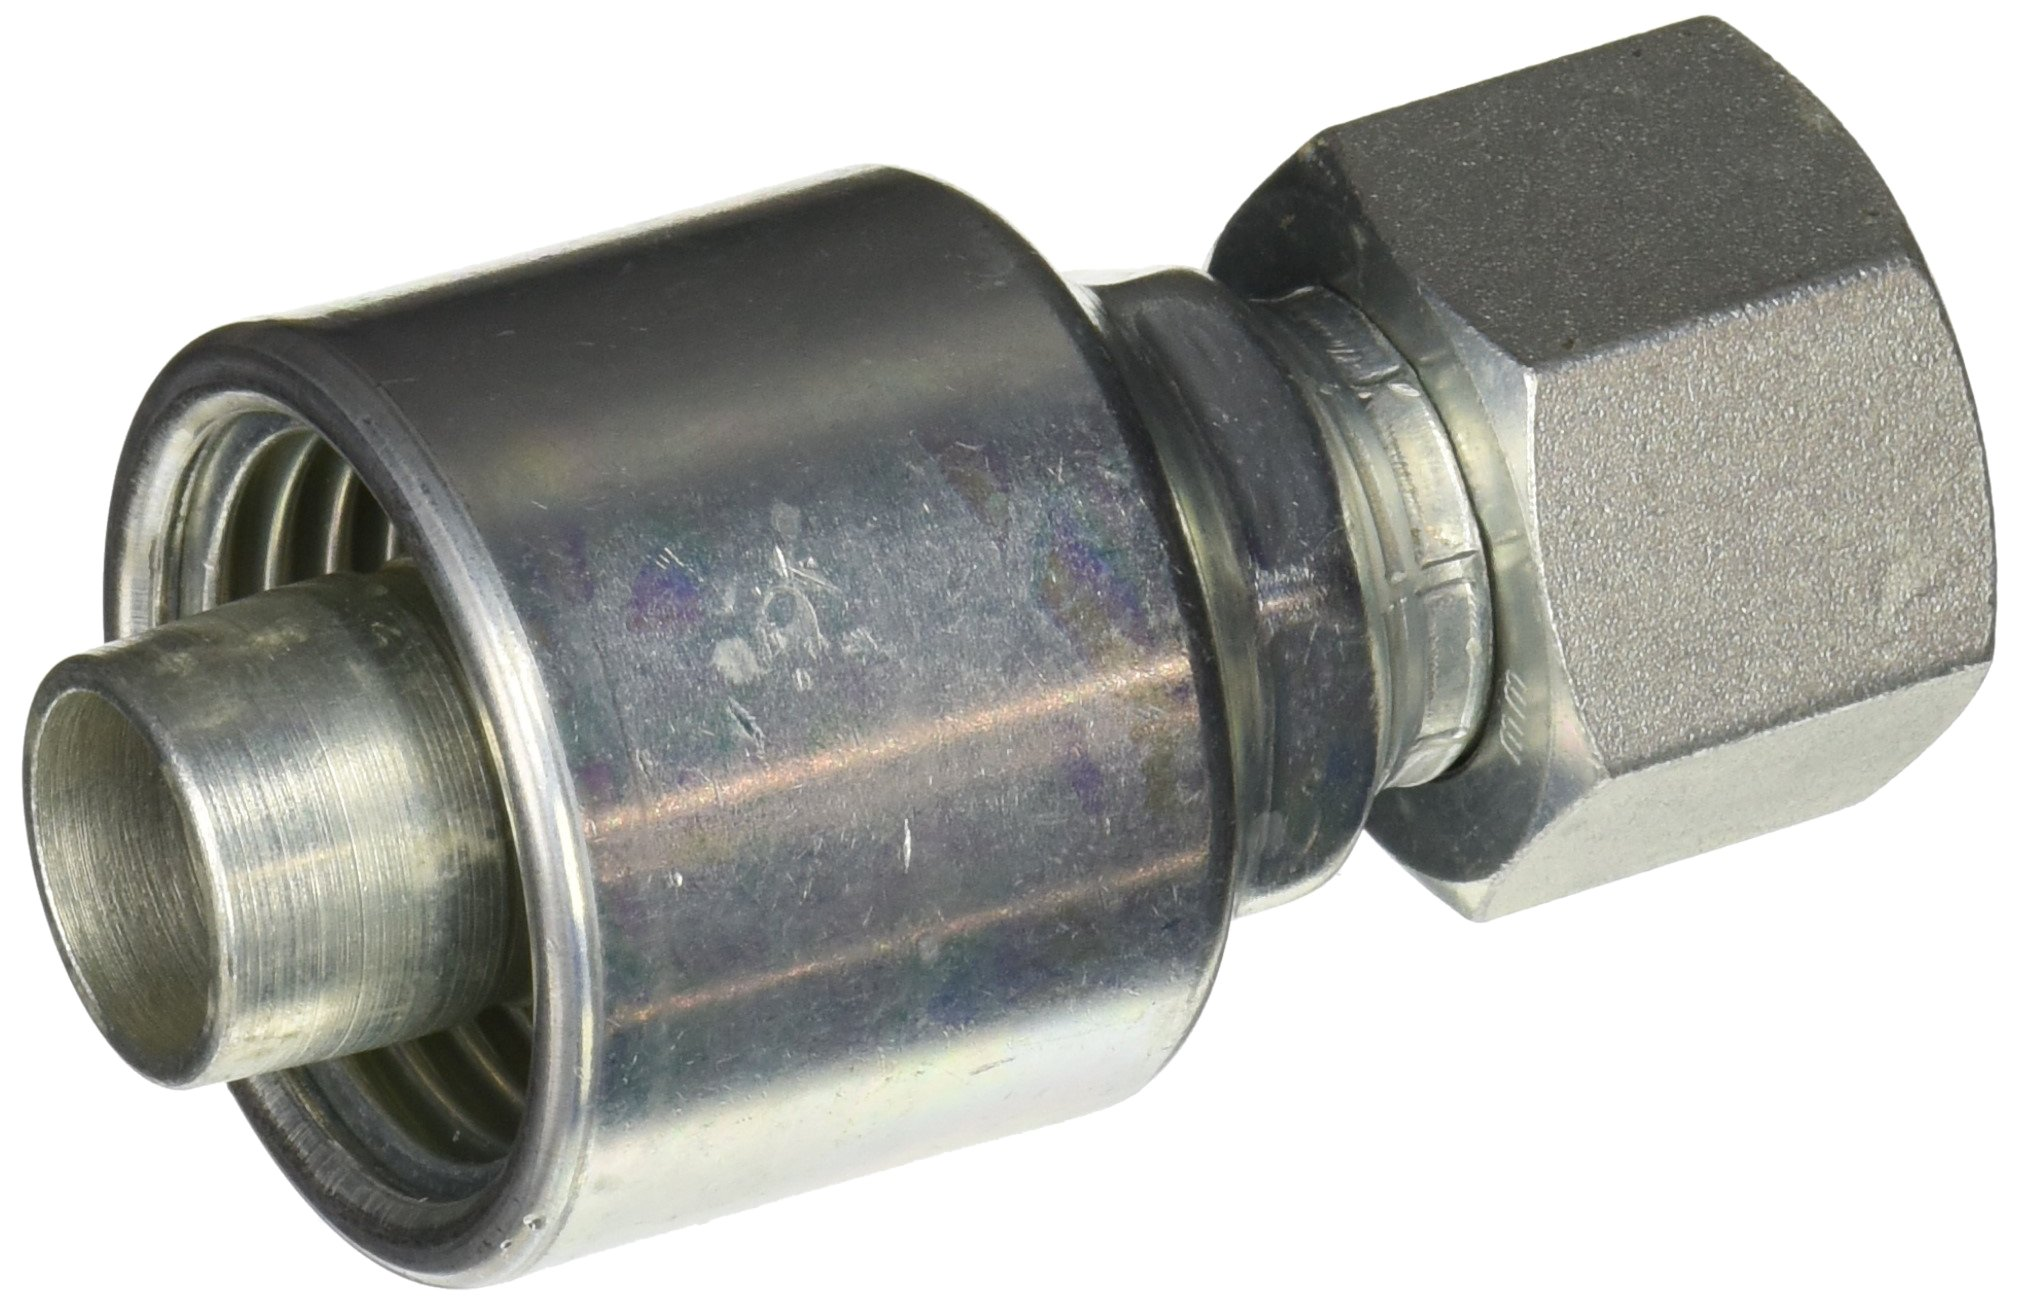 Gates G25170-1616 Female JIC 37 Flare Swivel (MegaCrimp)